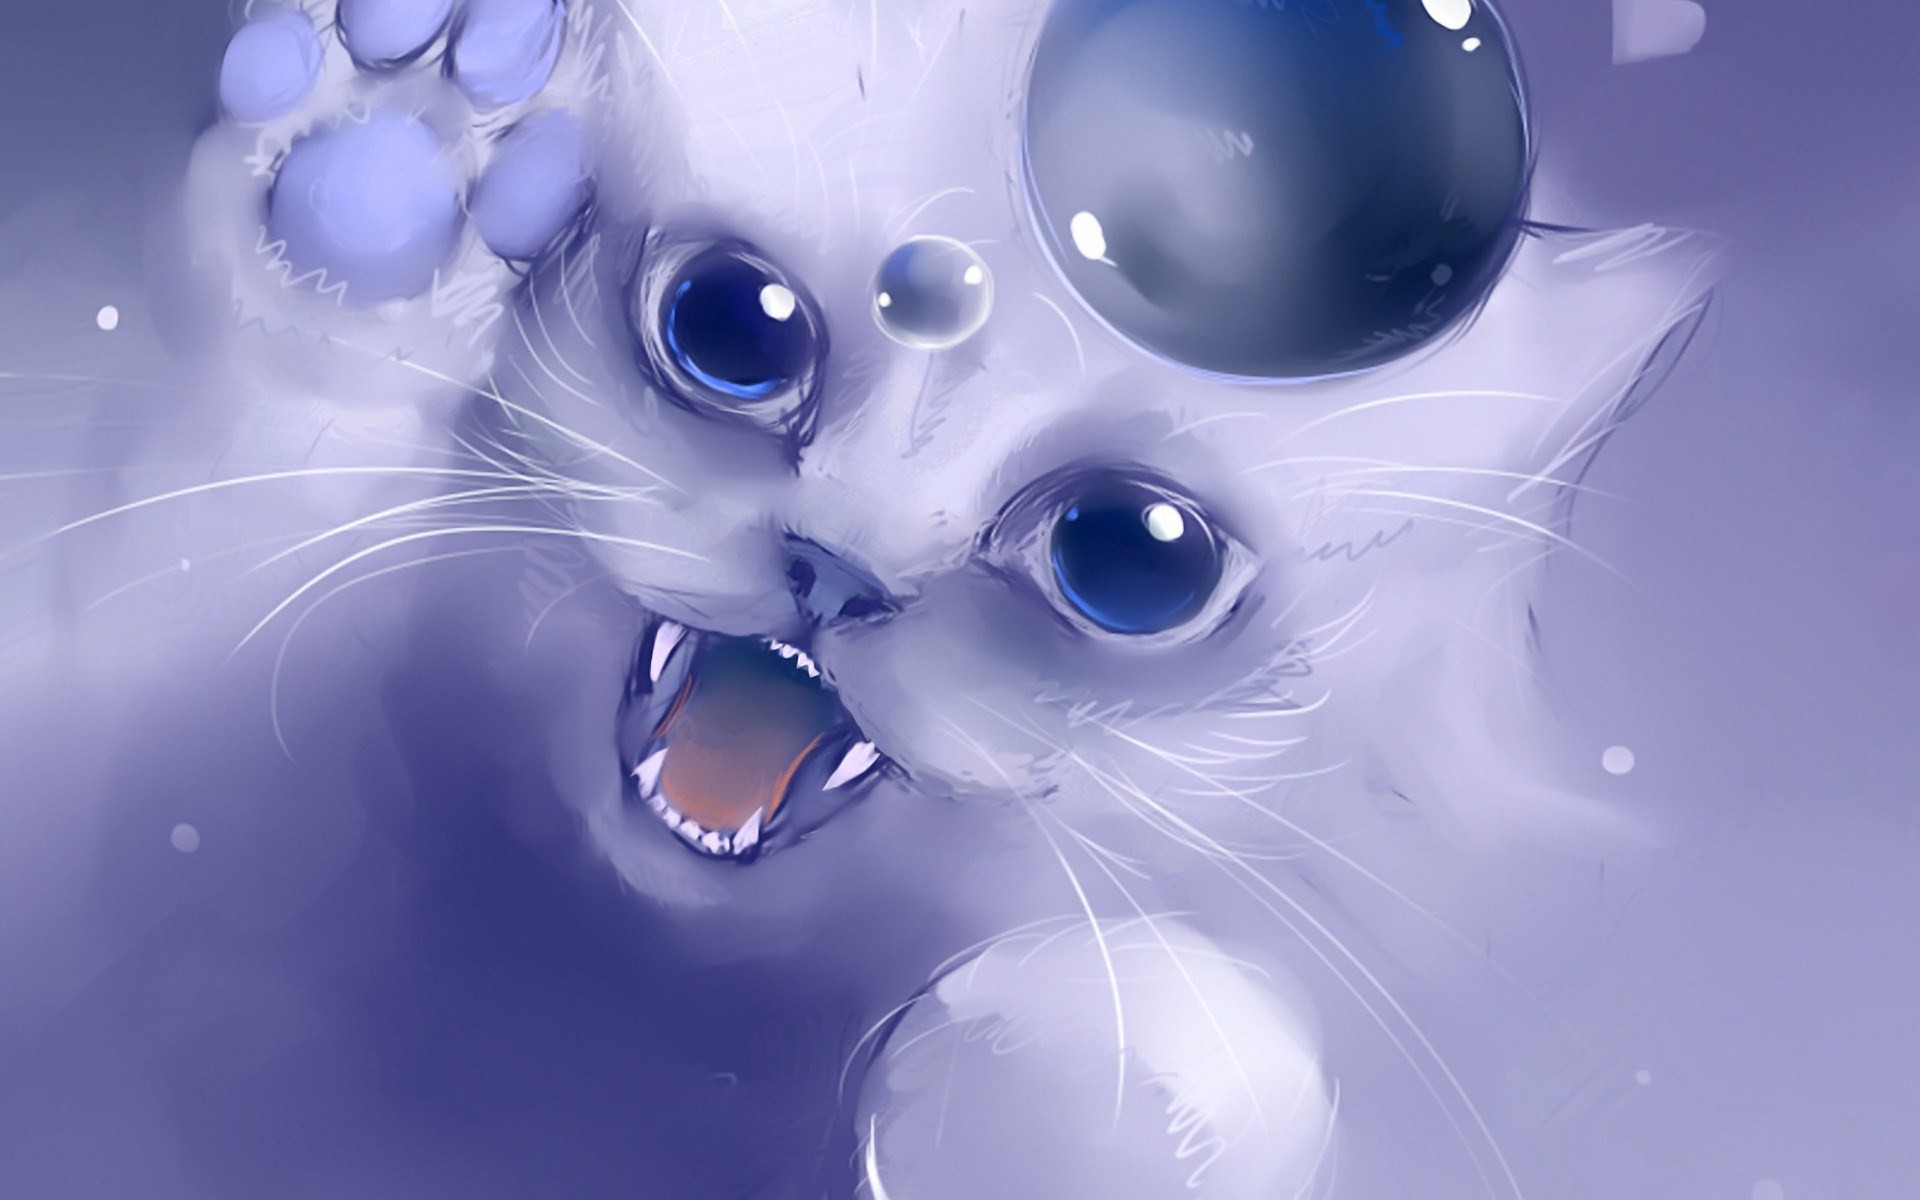 Hd Cartoon Cat Pictures Hd Desktop Wallpapers Background Cat And Bubble Drawing 478857 Hd Wallpaper Backgrounds Download